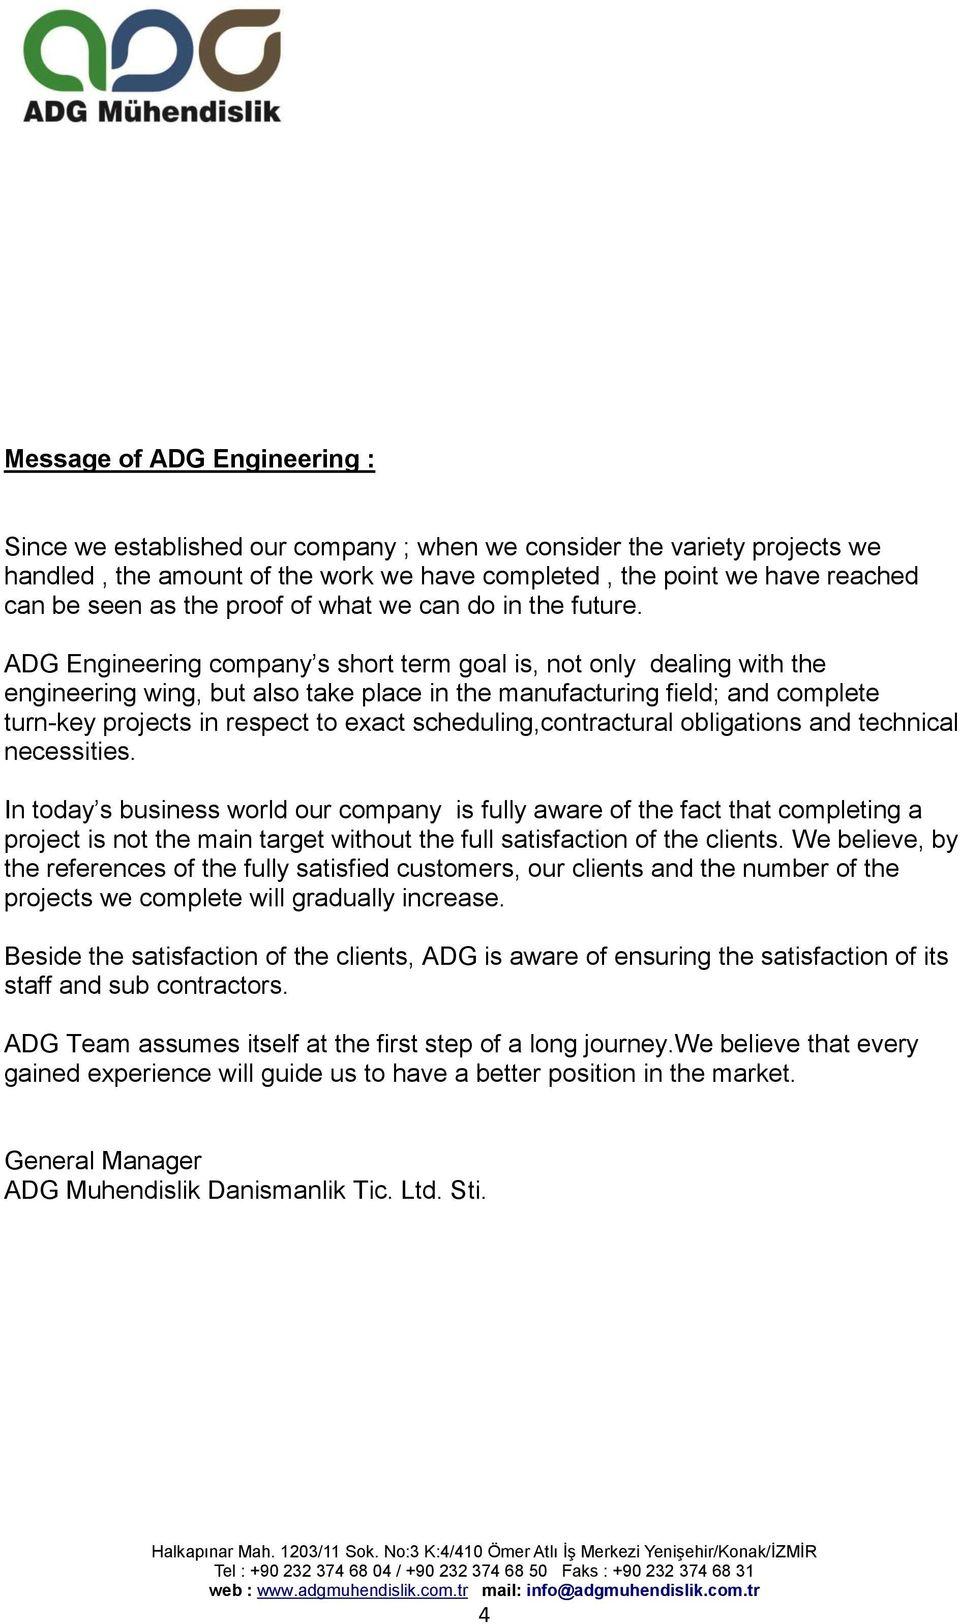 ADG Engineering company s short term goal is, not only dealing with the engineering wing, but also take place in the manufacturing field; and complete turn-key projects in respect to exact